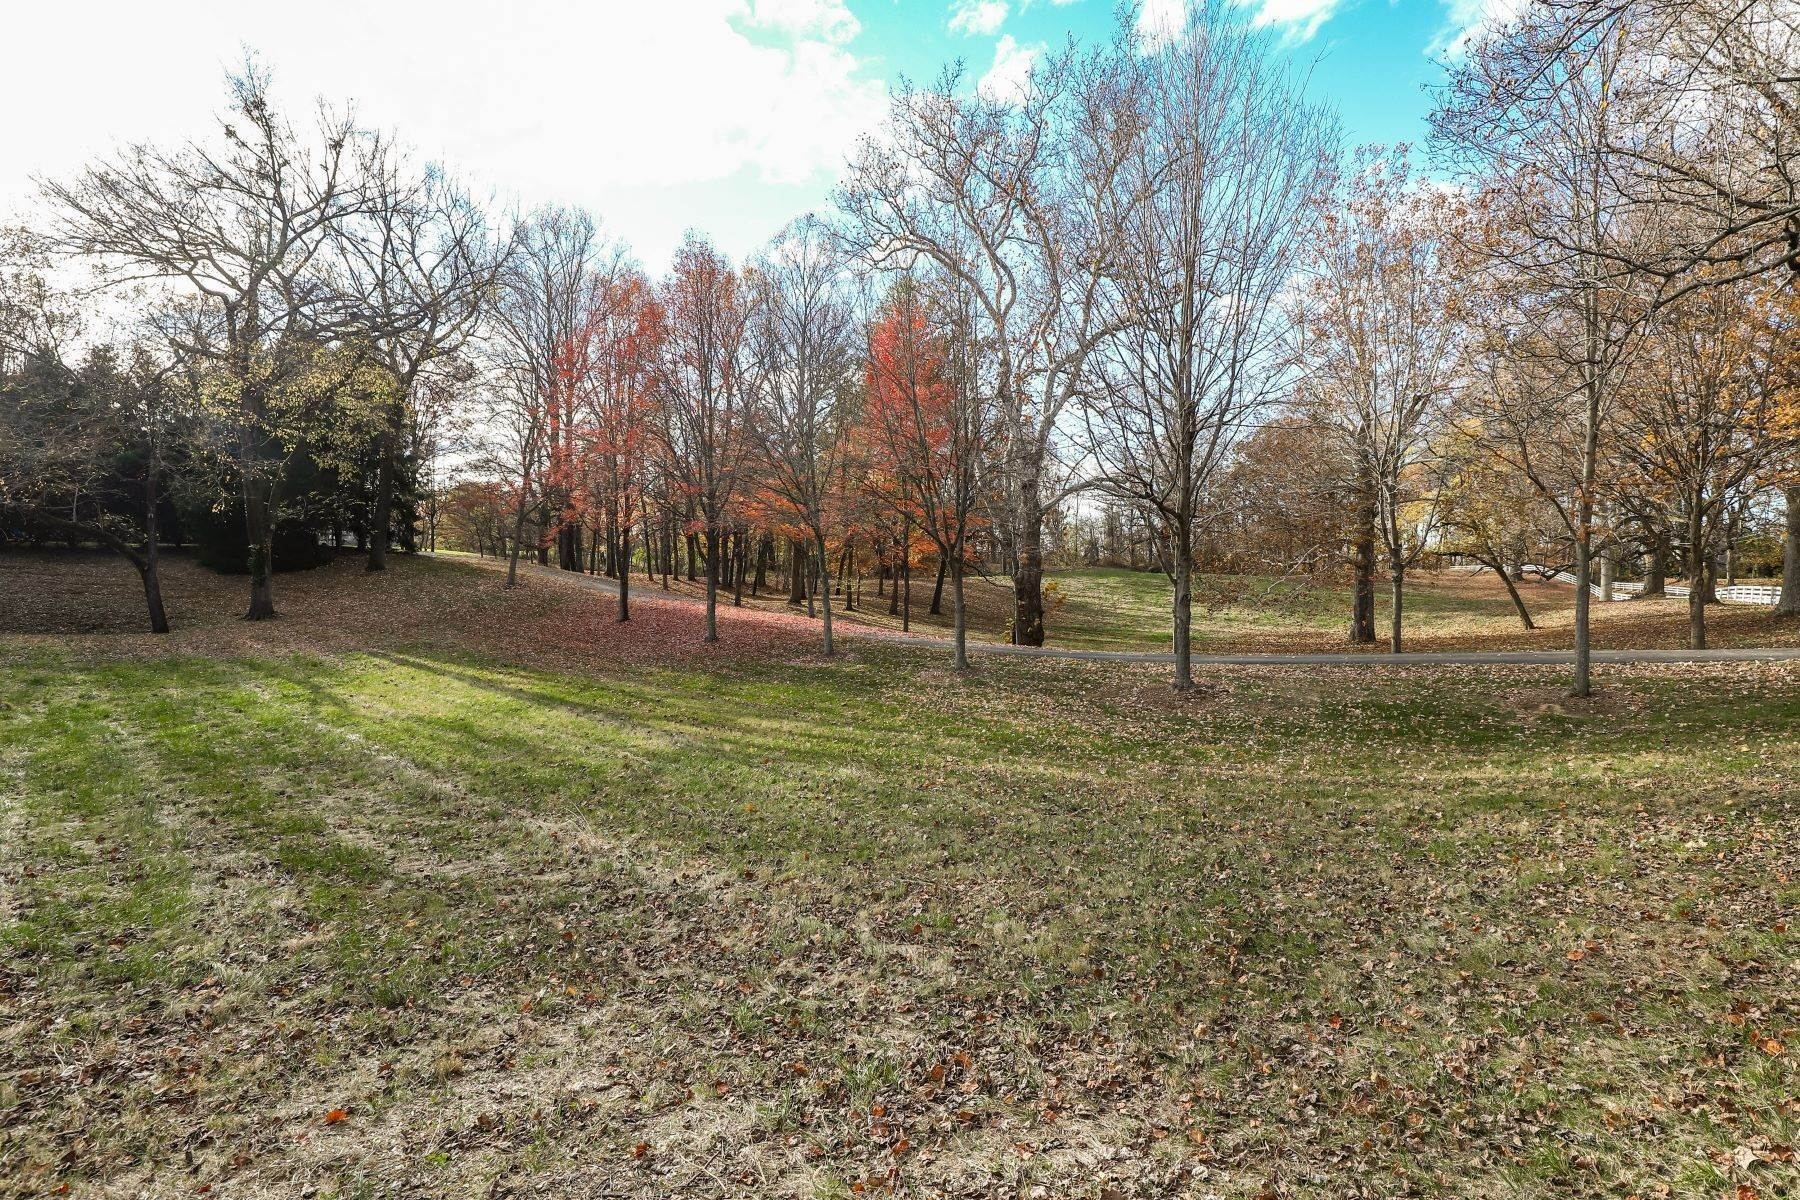 Land for Sale at 6304 Wolf Pen Branch Road Tract #1 6304 Wolf Pen Branch Road, Tract #1 Prospect, Kentucky 40059 United States